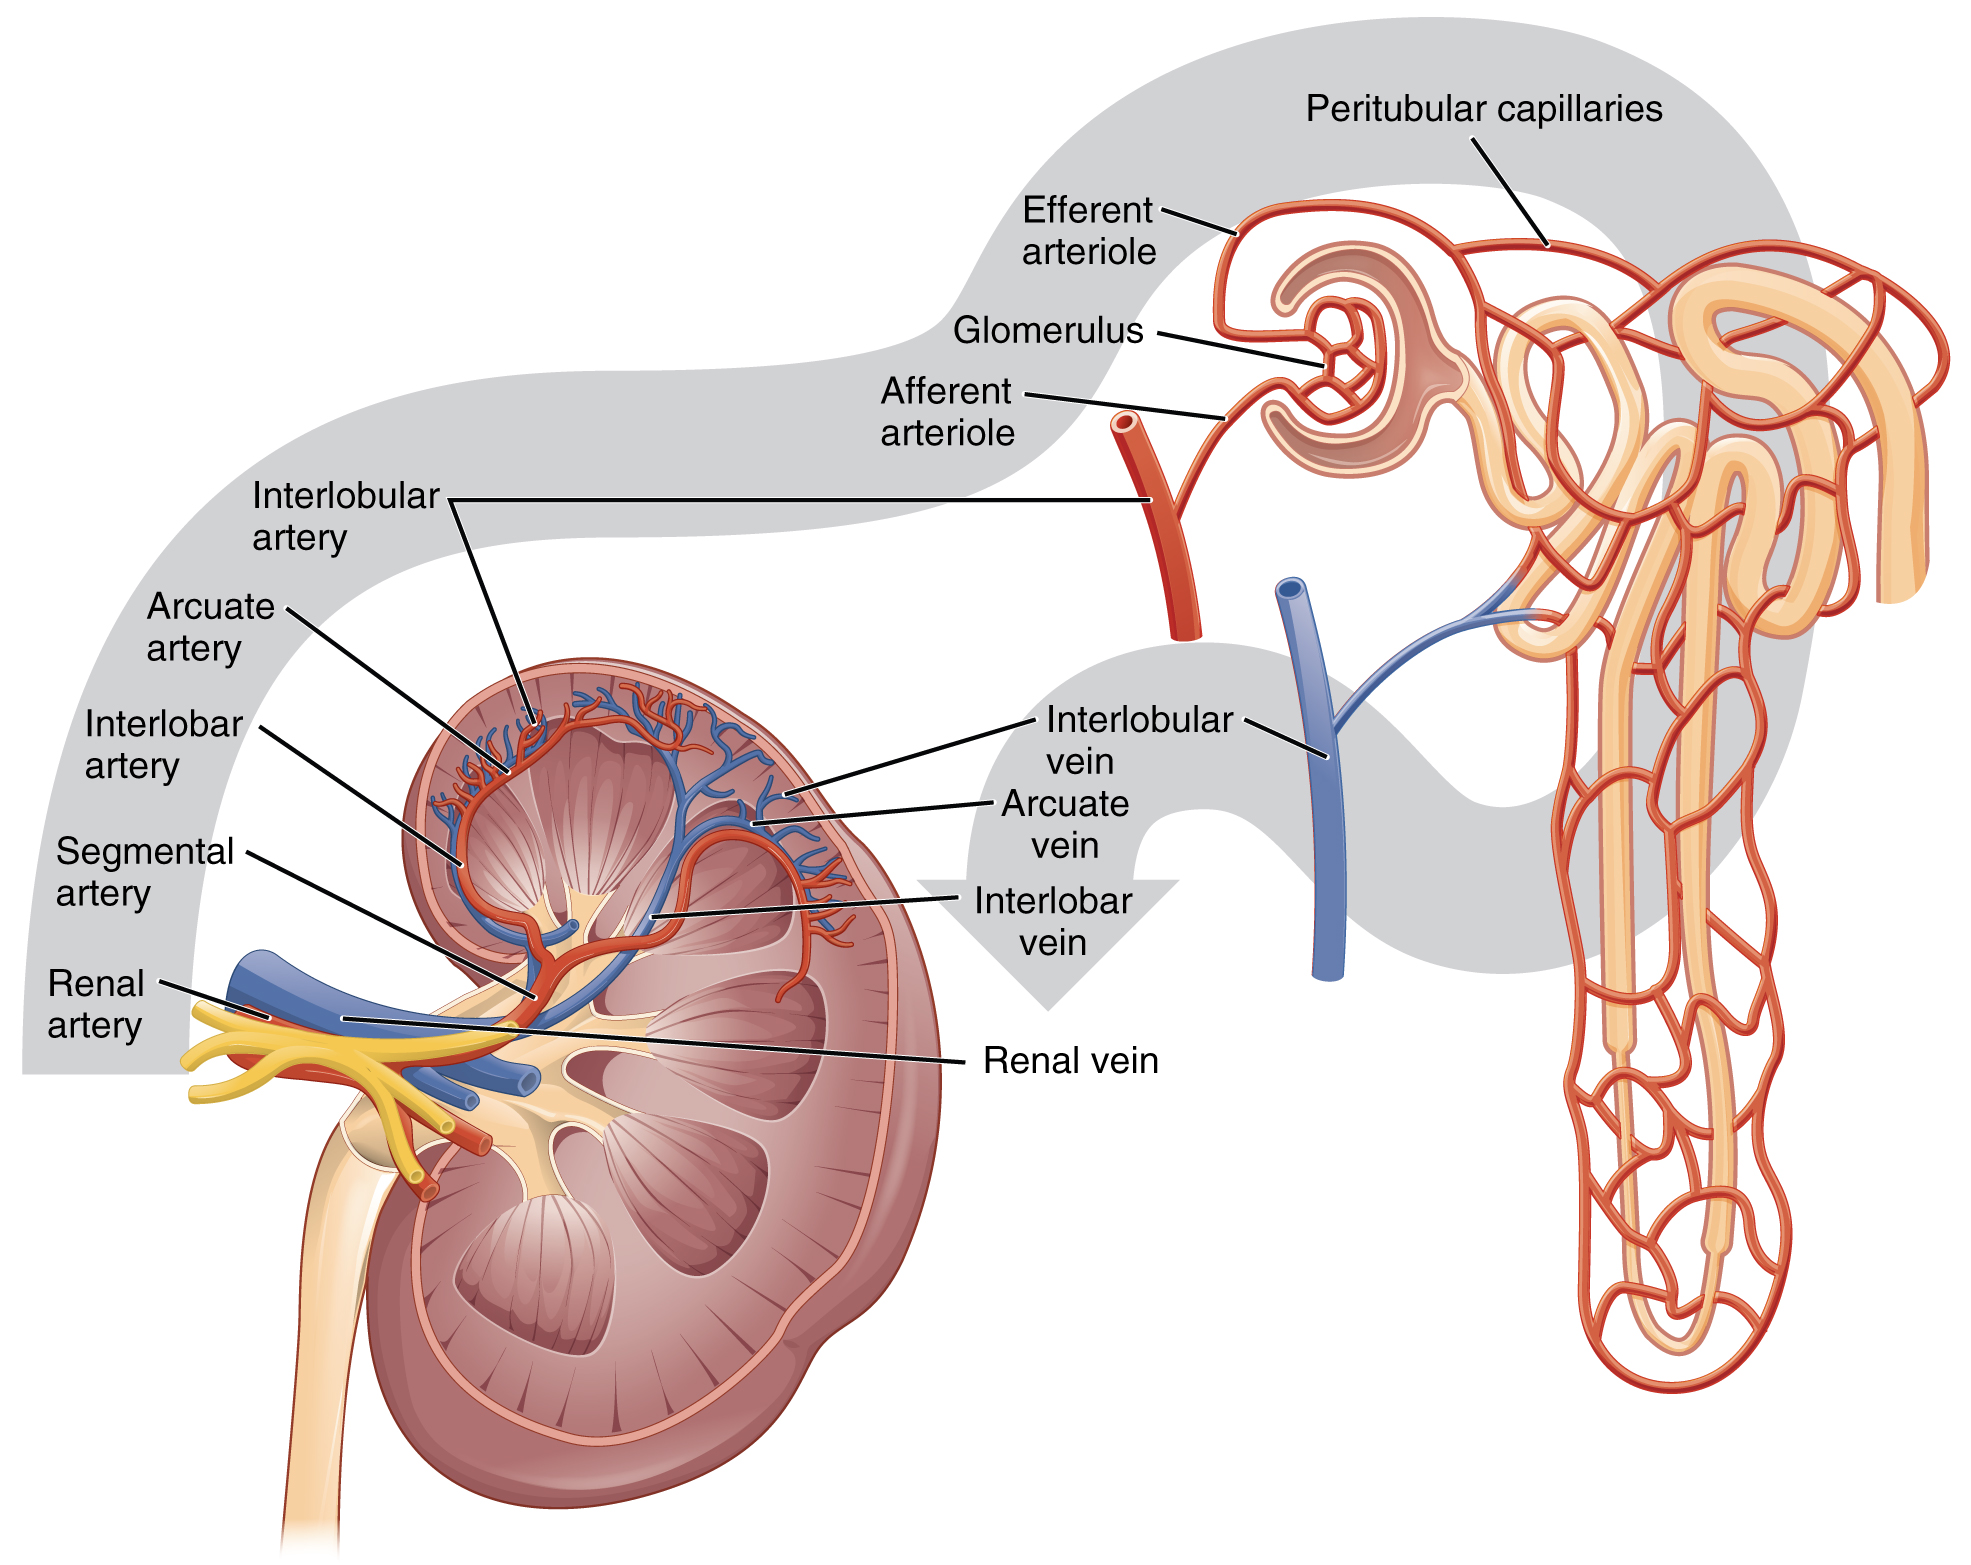 25.3 Gross Anatomy of the Kidney – Anatomy and Physiology